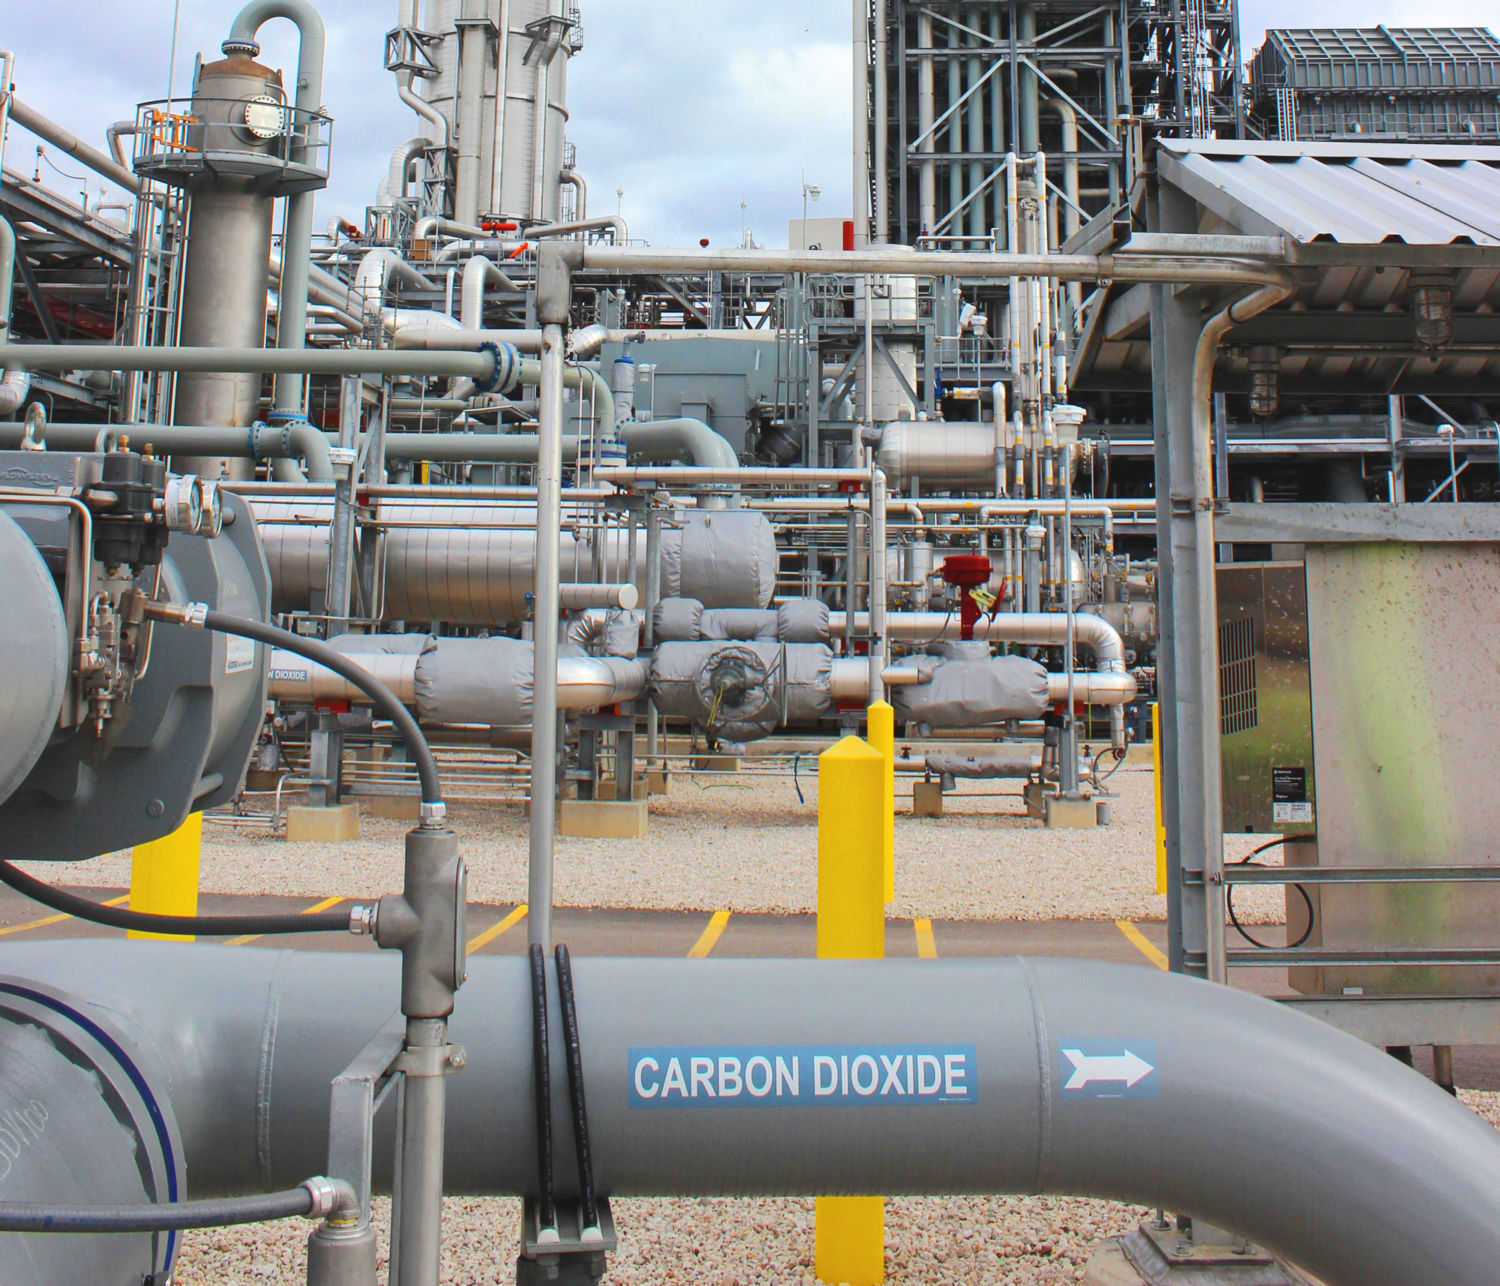 Why Green Groups Are Split on Subsidizing Carbon Capture Technology